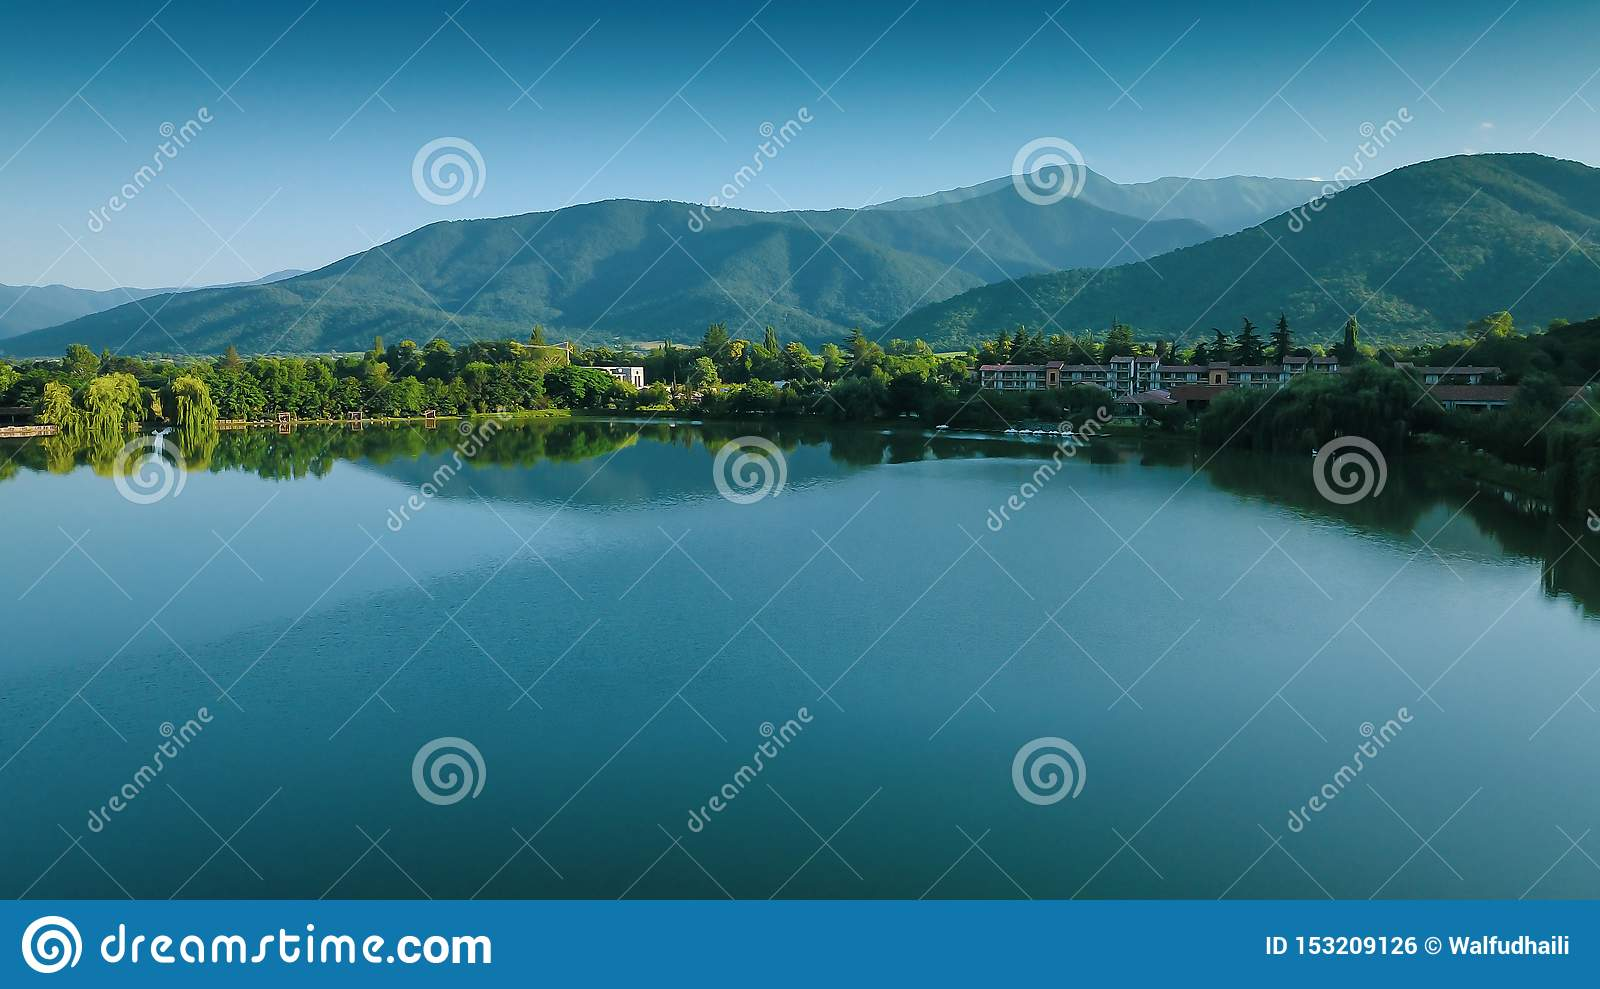 Lapota lake with mountains reflections located in Georgia country. Great place for vacation traveller.